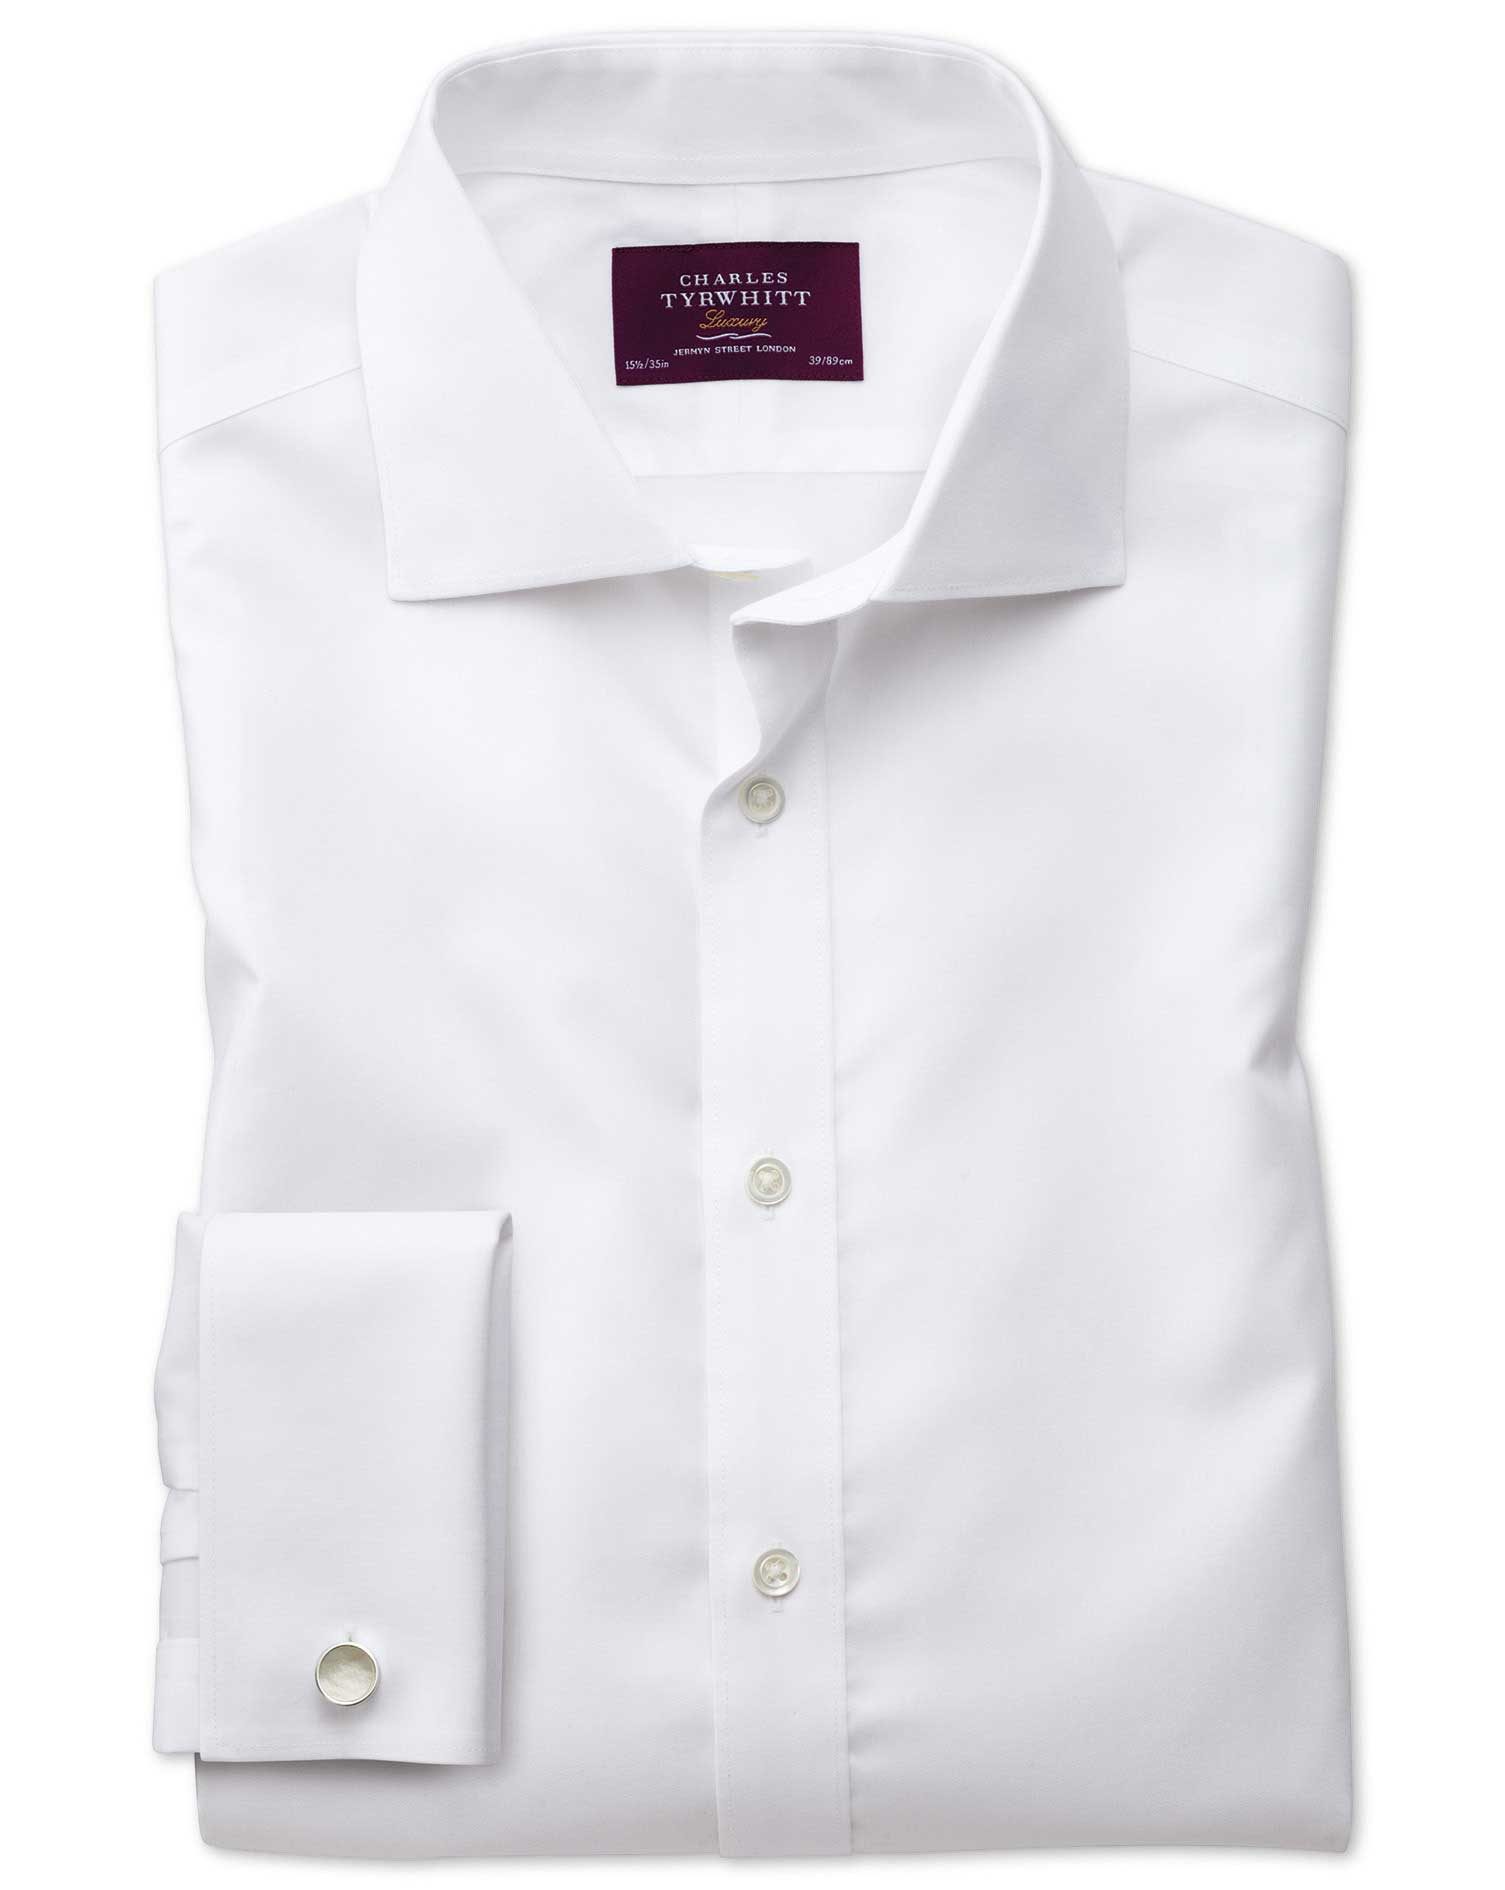 Extra Slim Fit Semi-Cutaway Non-Iron Luxury White Cotton Formal Shirt Double Cuff Size 16.5/35 by Ch